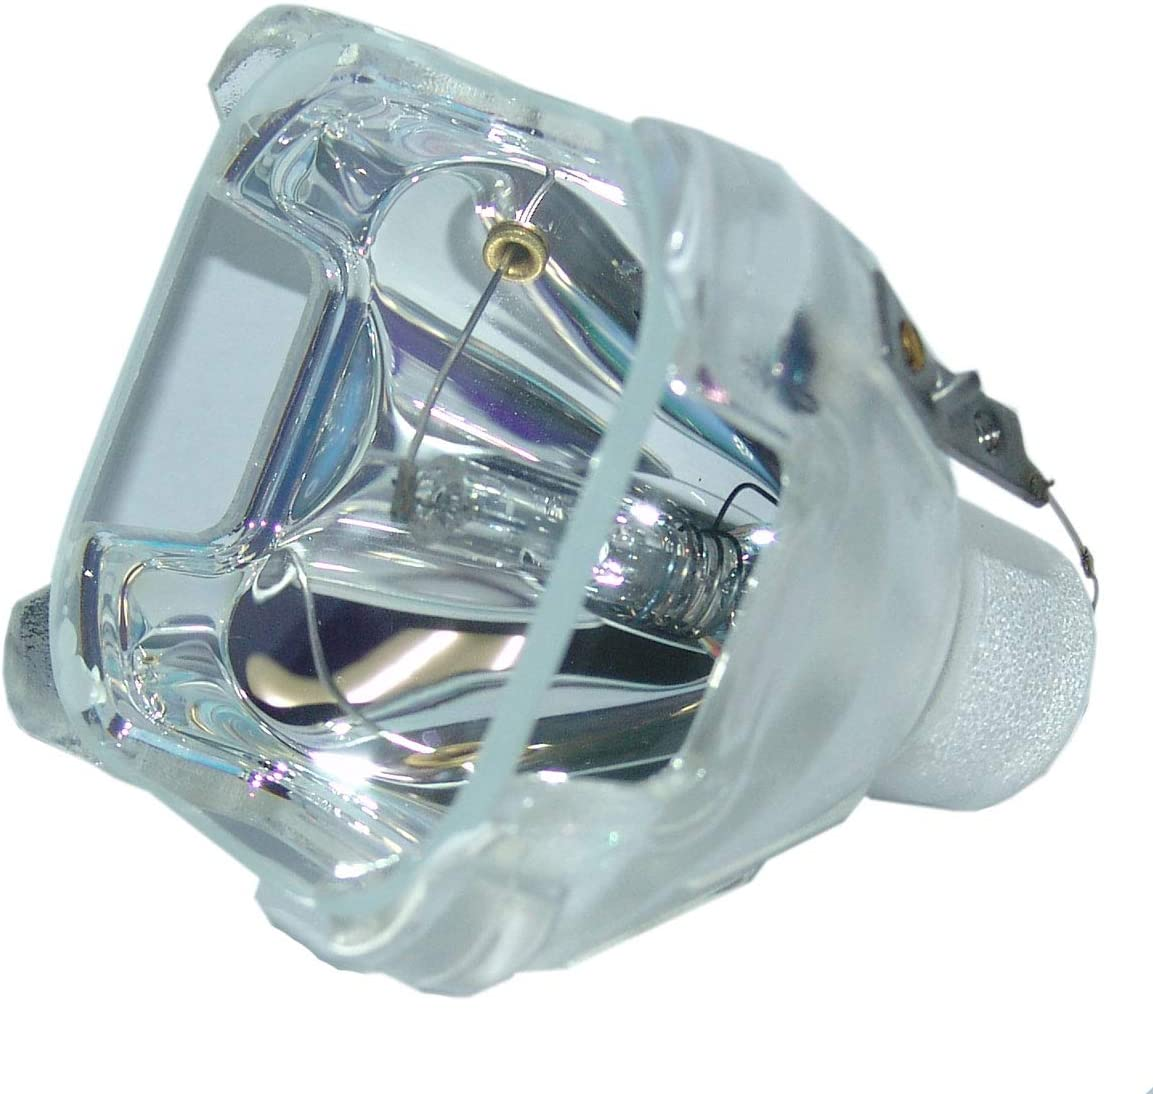 Lutema Economy Washington Spring new work Mall Bulb for JVC Projector Lamp HD100 Only